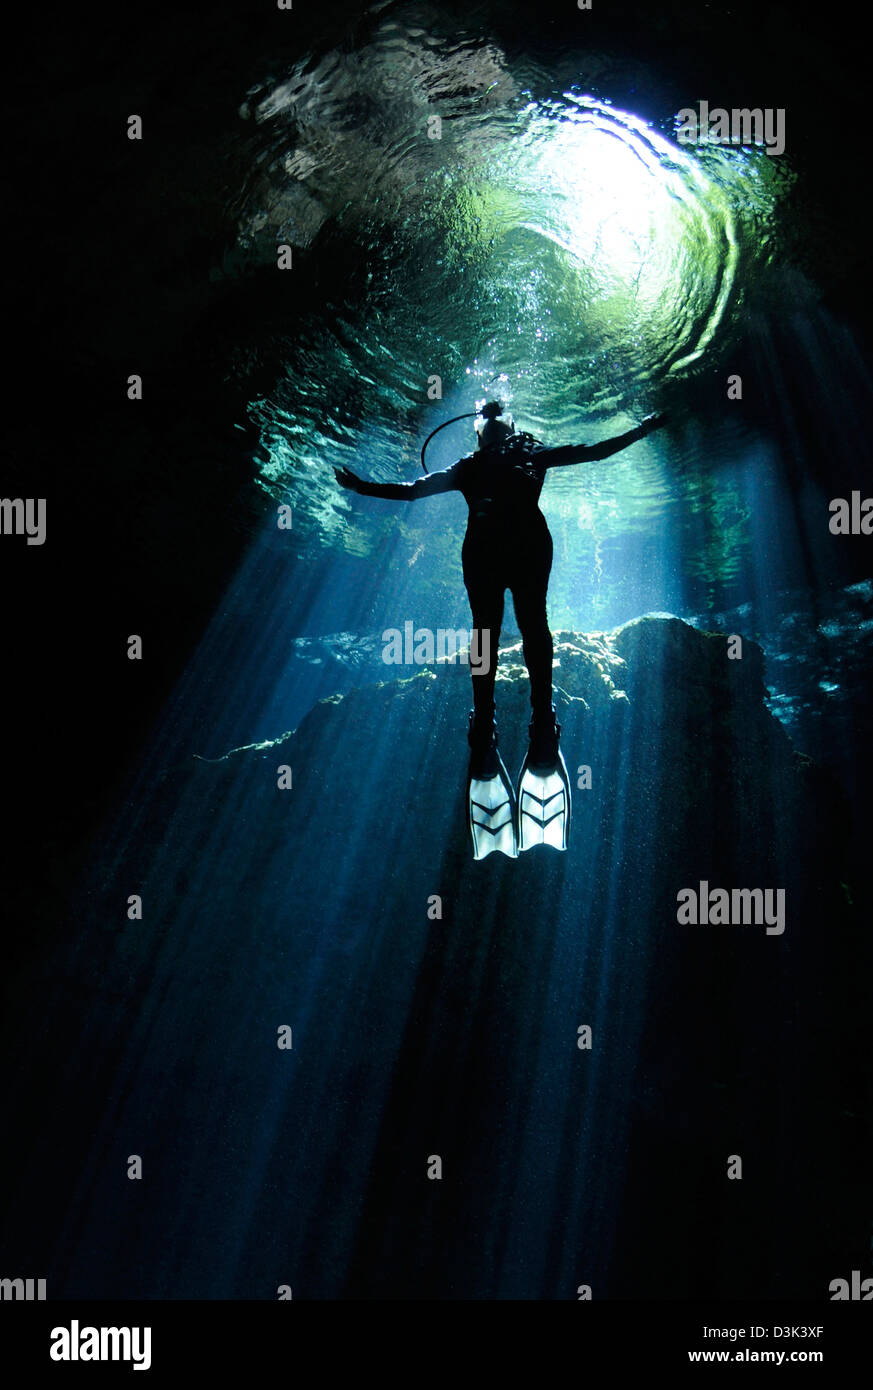 A cavern diver ascends into the light filtering into cenote system at Yucatan Peninsula, Mexico. Stock Photo